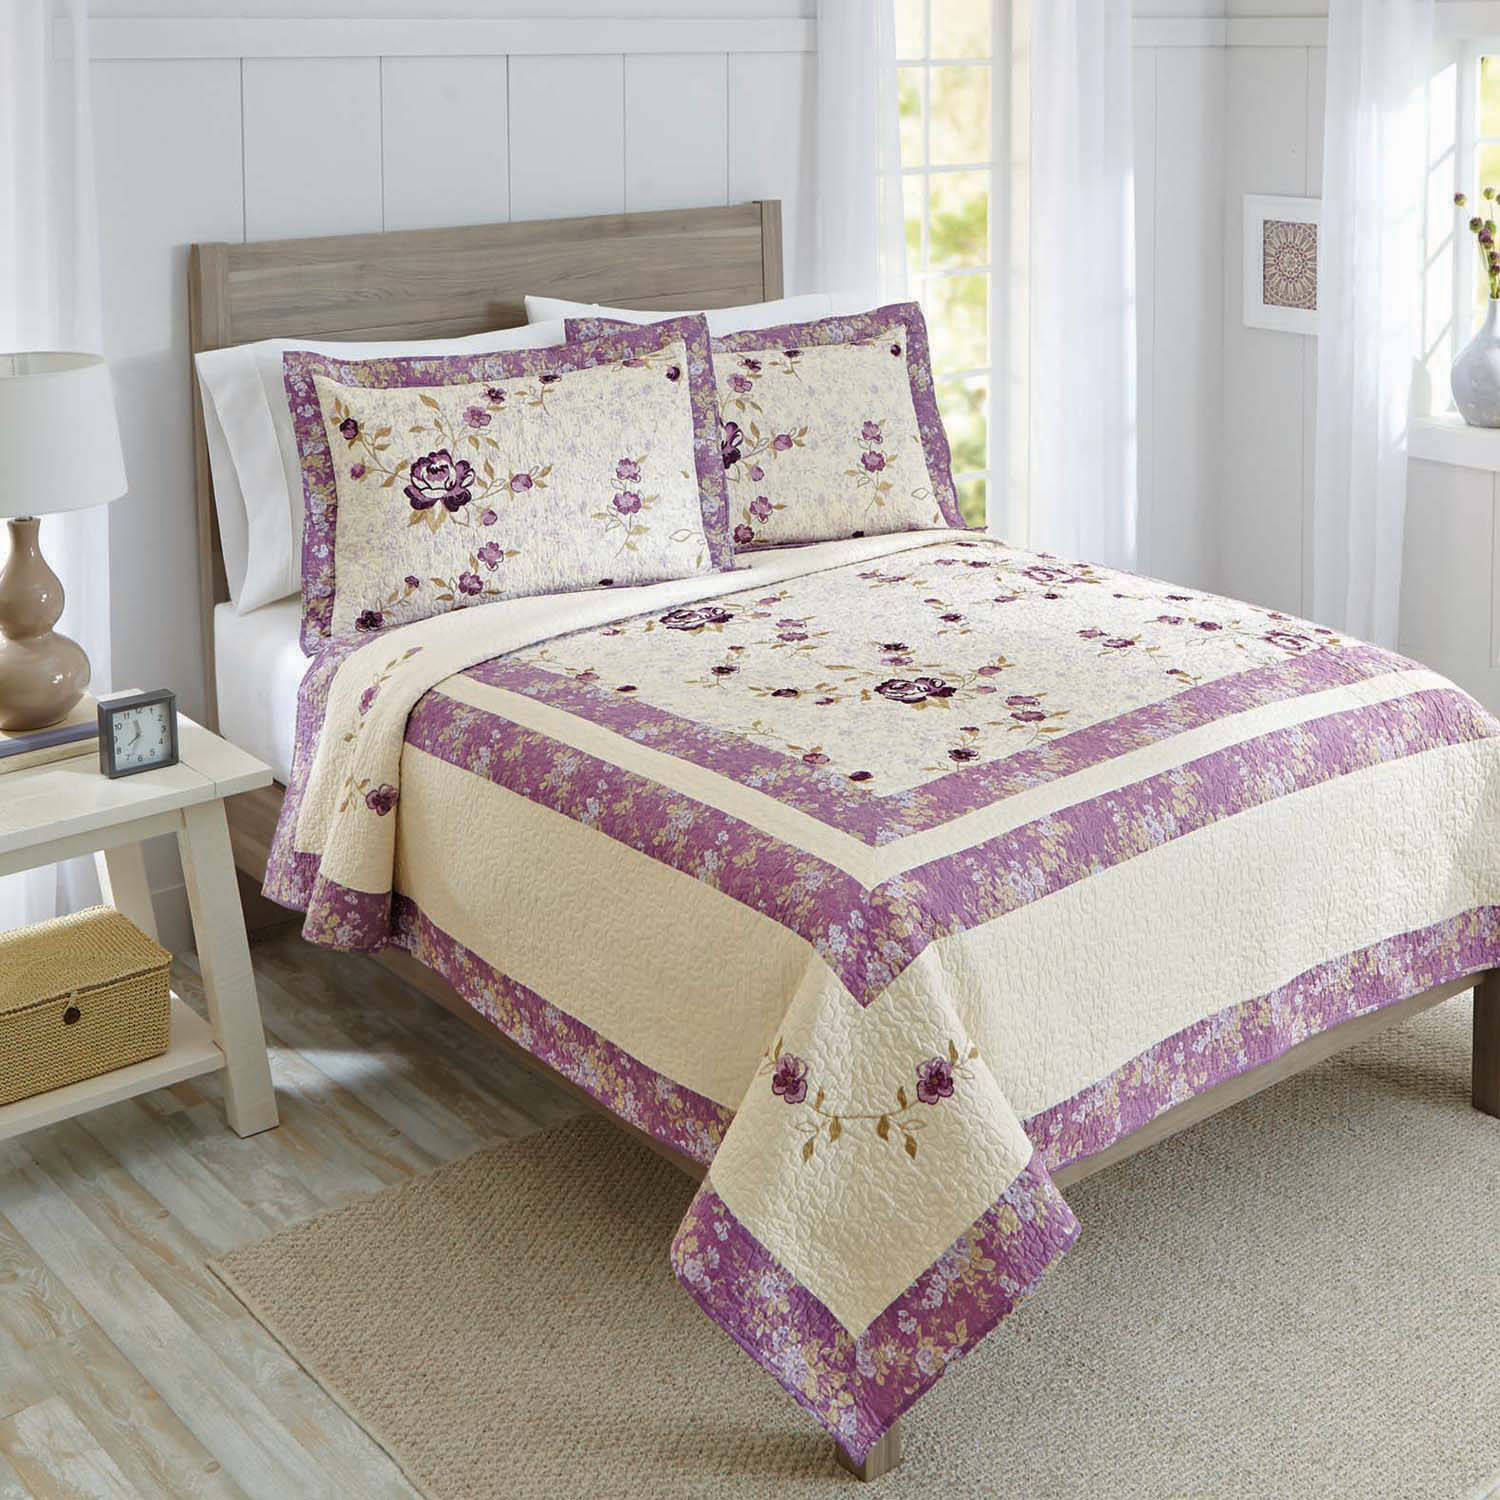 Better Homes and Gardens Purple Blossom Quilt Collection - Walmart.com : purple quilted bedspreads - Adamdwight.com